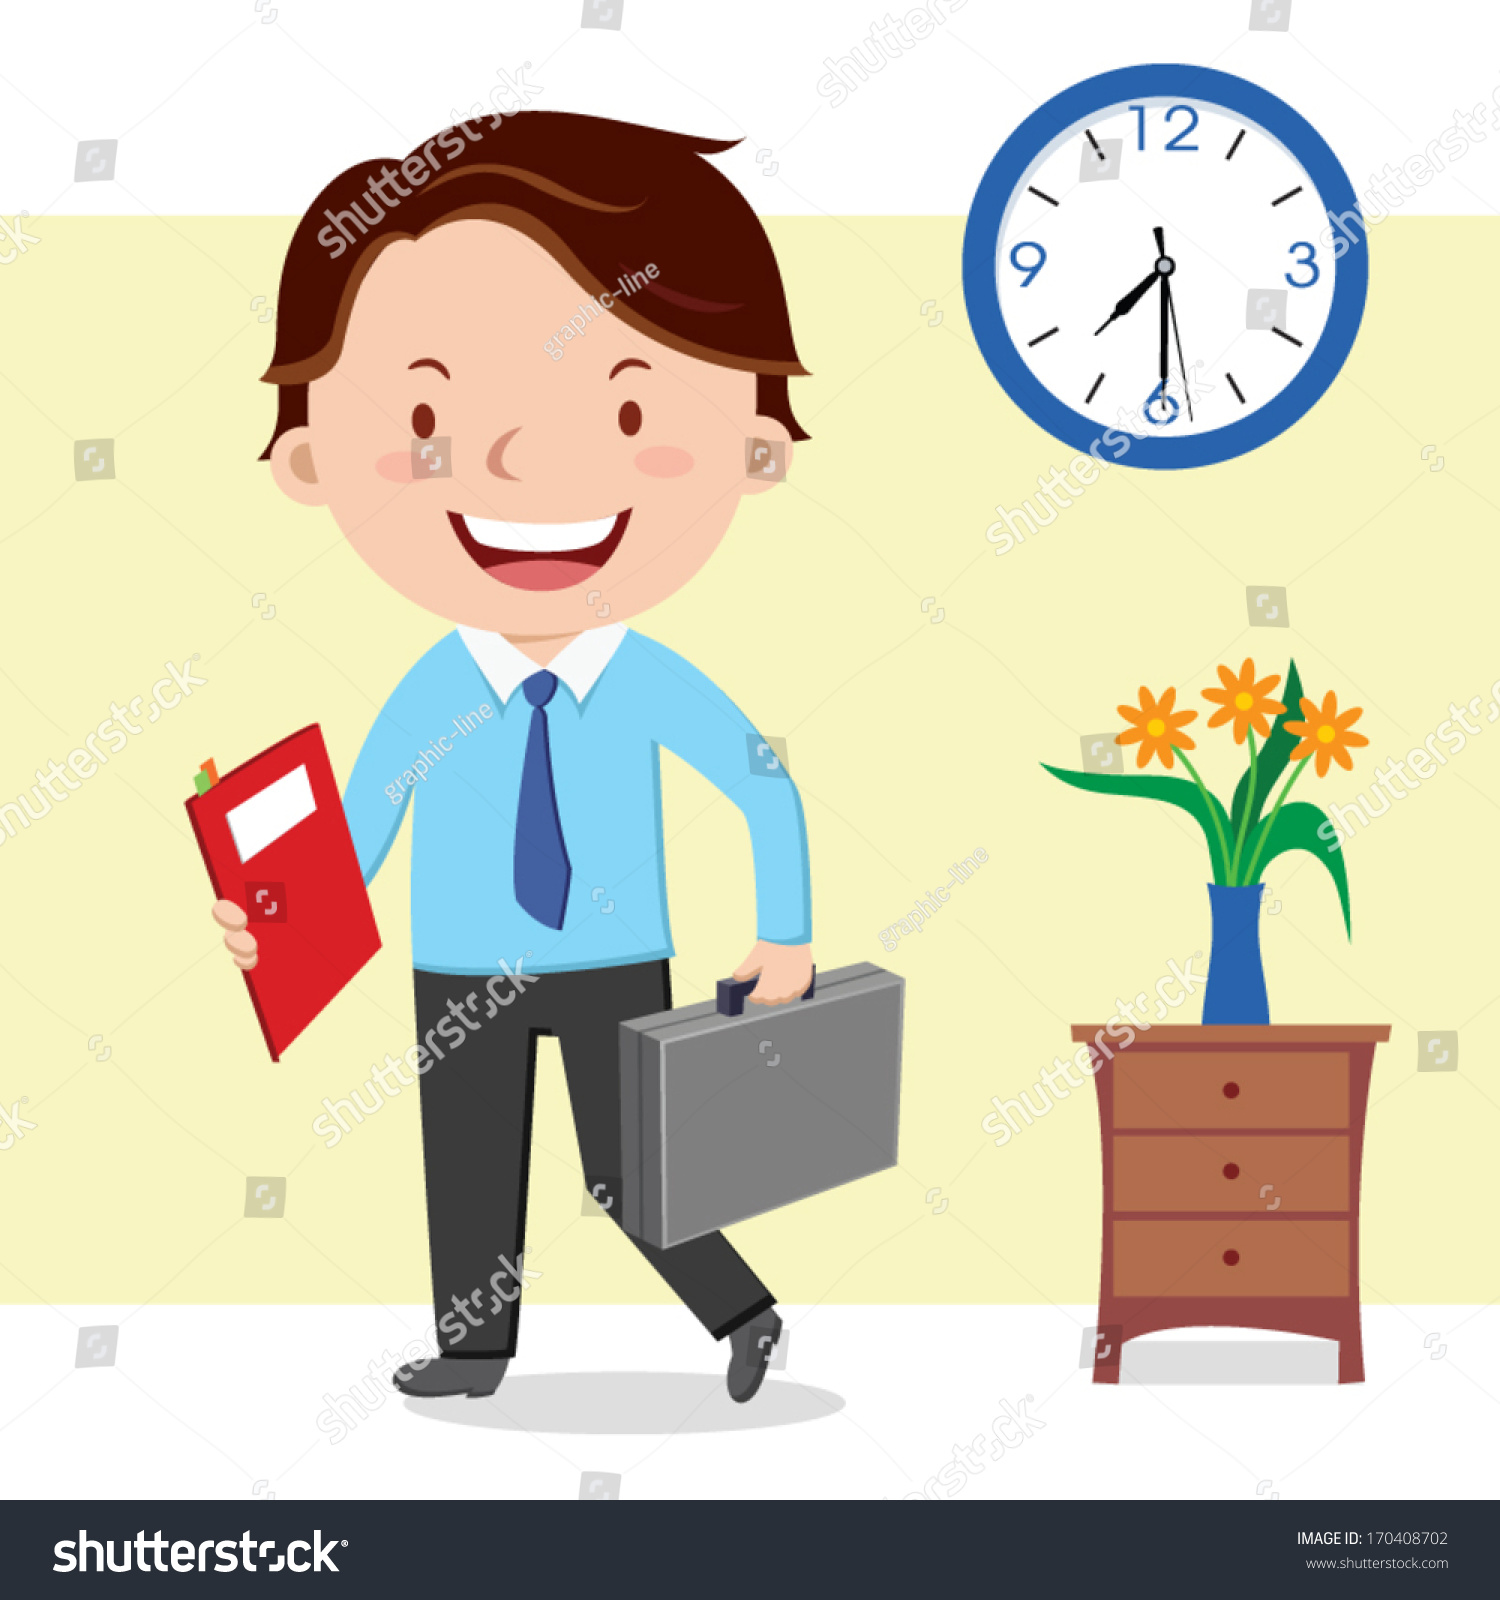 Go to work clipart 10 » Clipart Station.